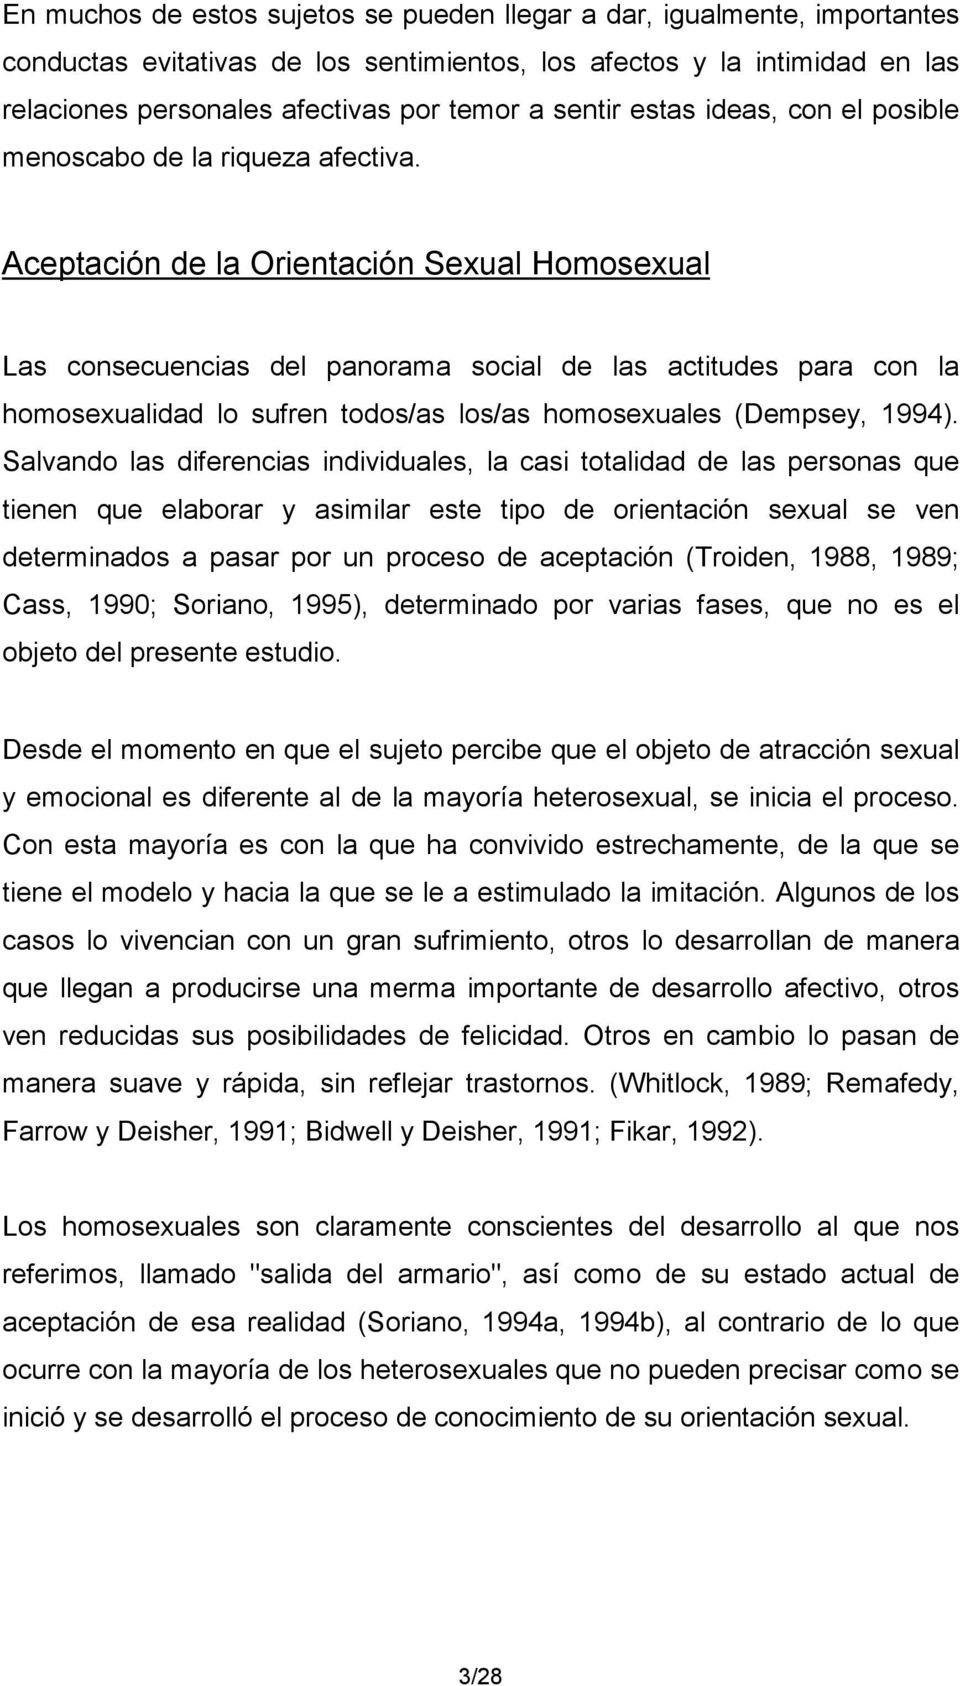 Troiden 1989 the formation of homosexual identities